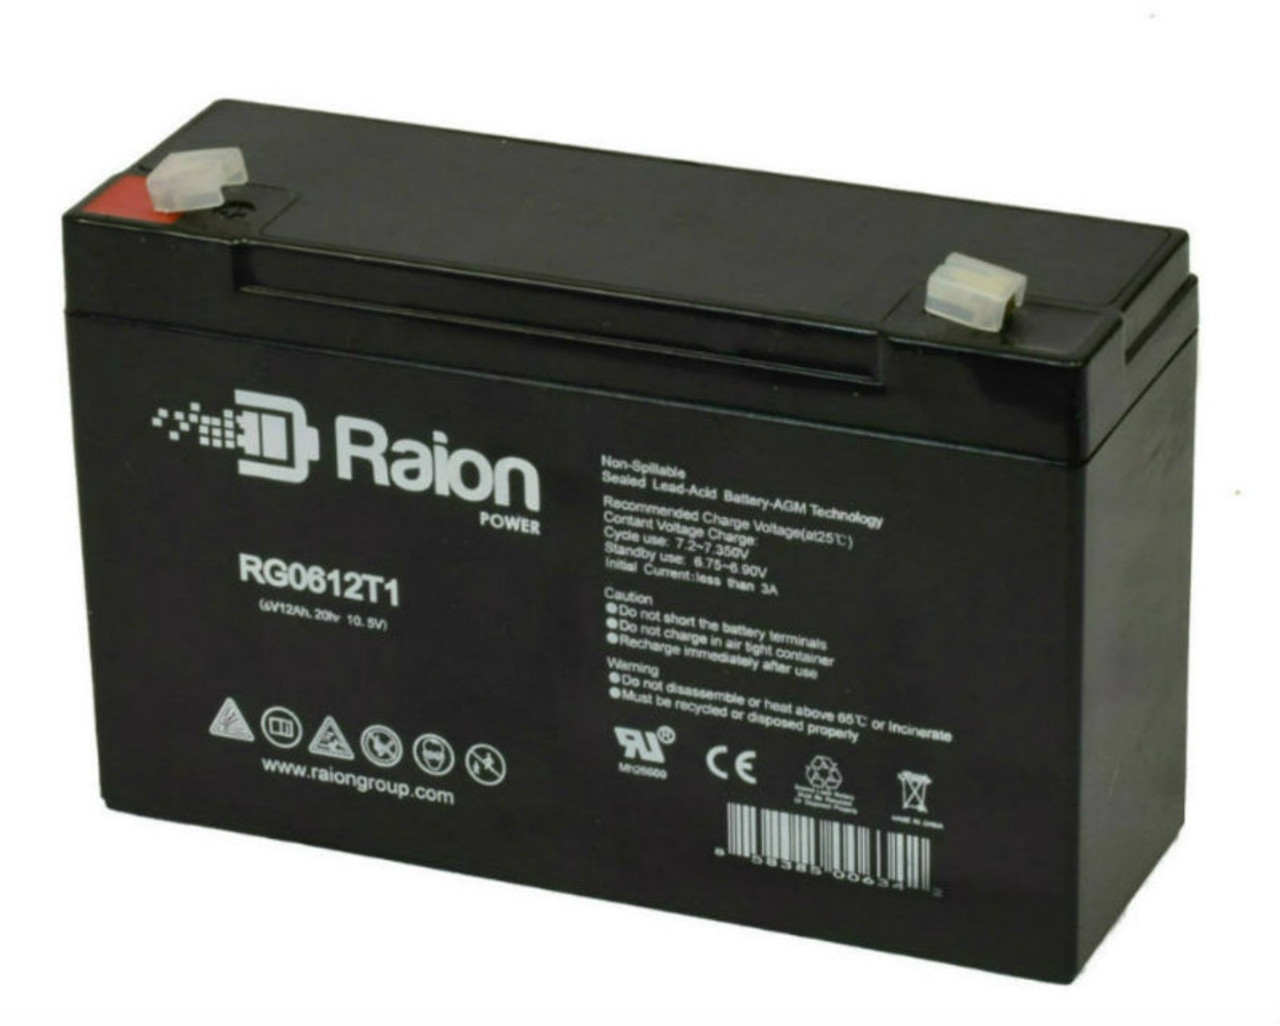 Raion Power RG06120T1 Replacement Battery Pack for Lithonia LL196B emergency light